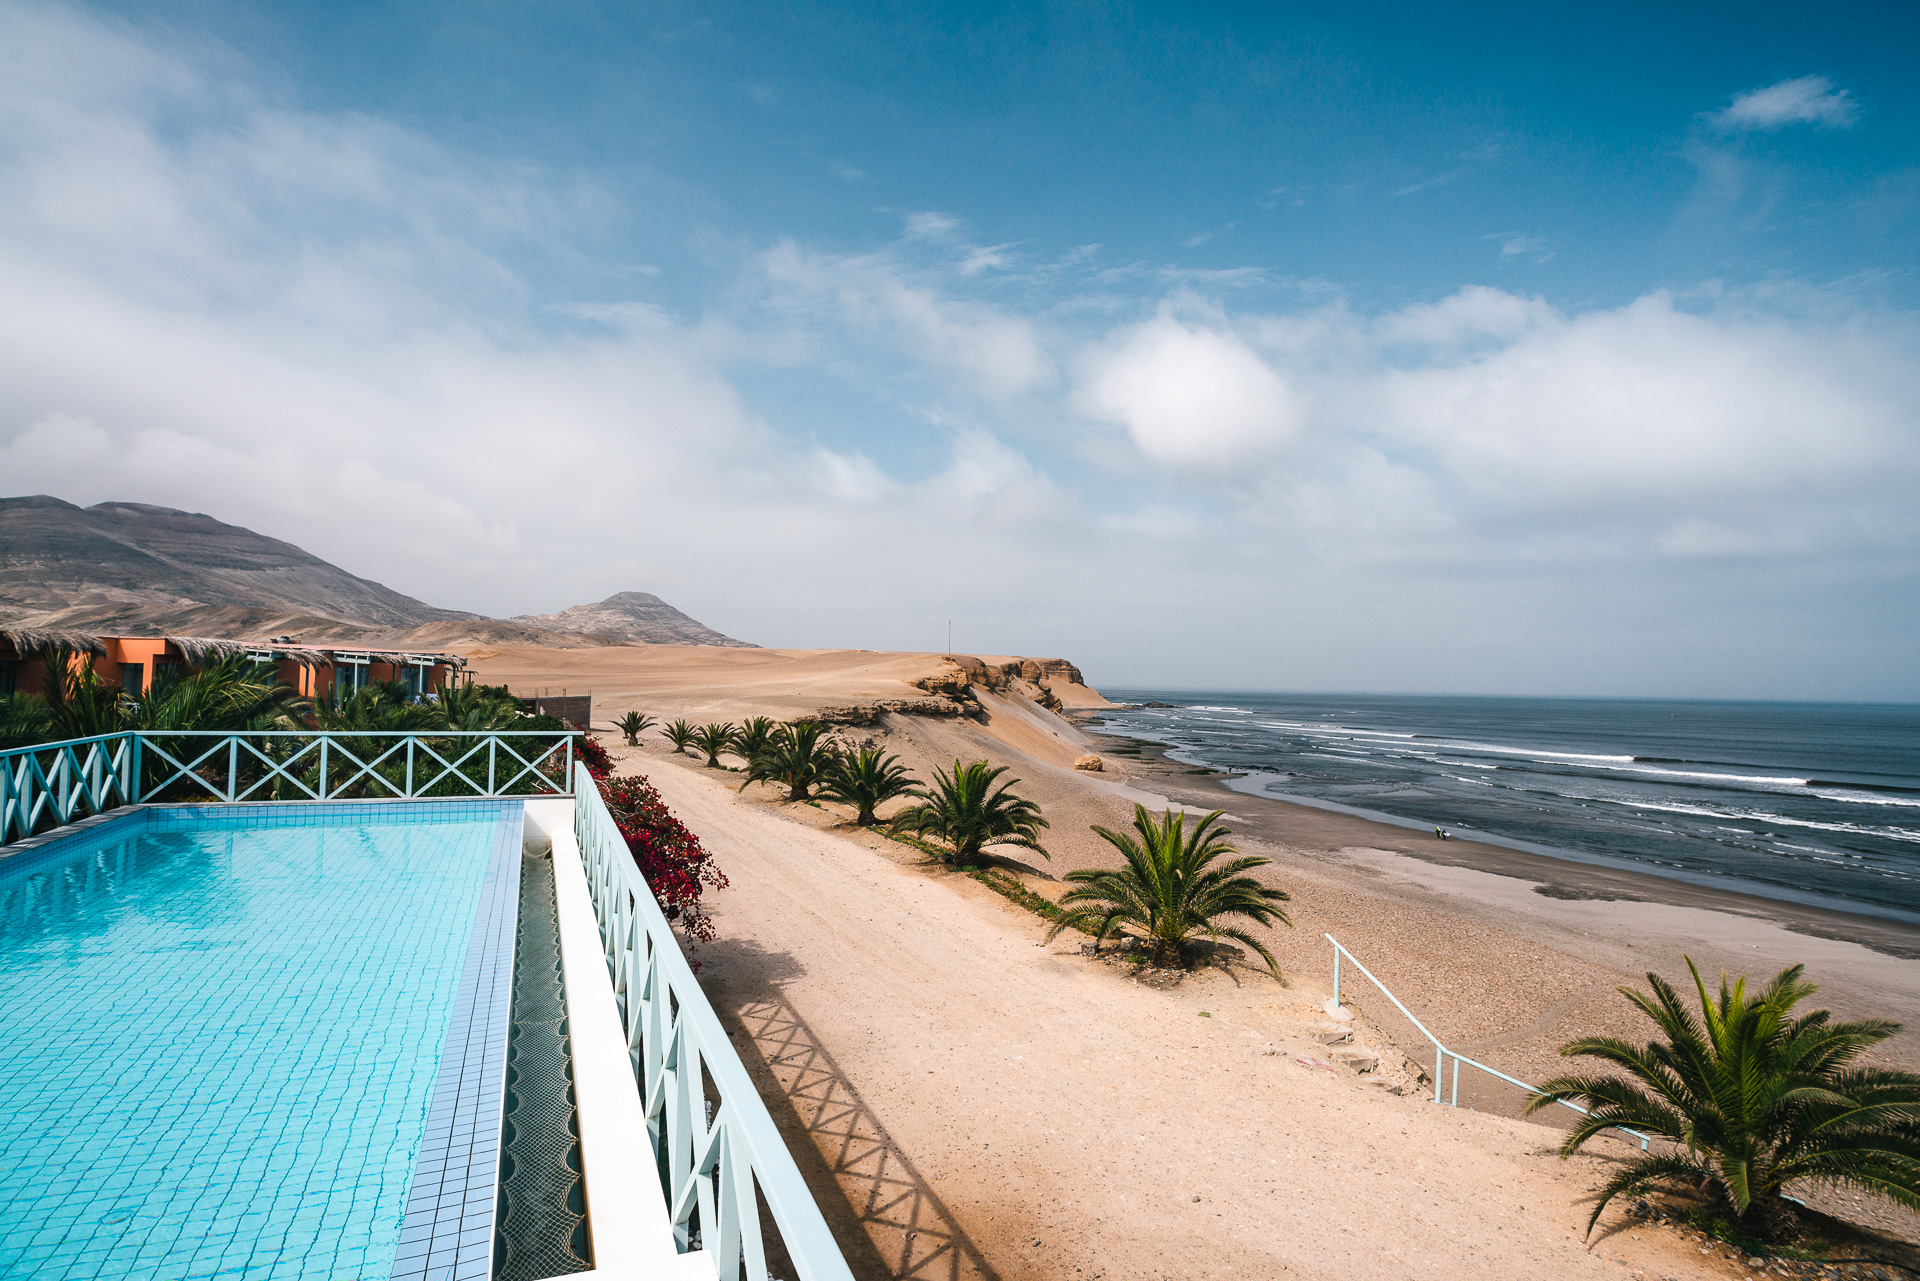 Surf & Chill - Chicama Surf Hotel